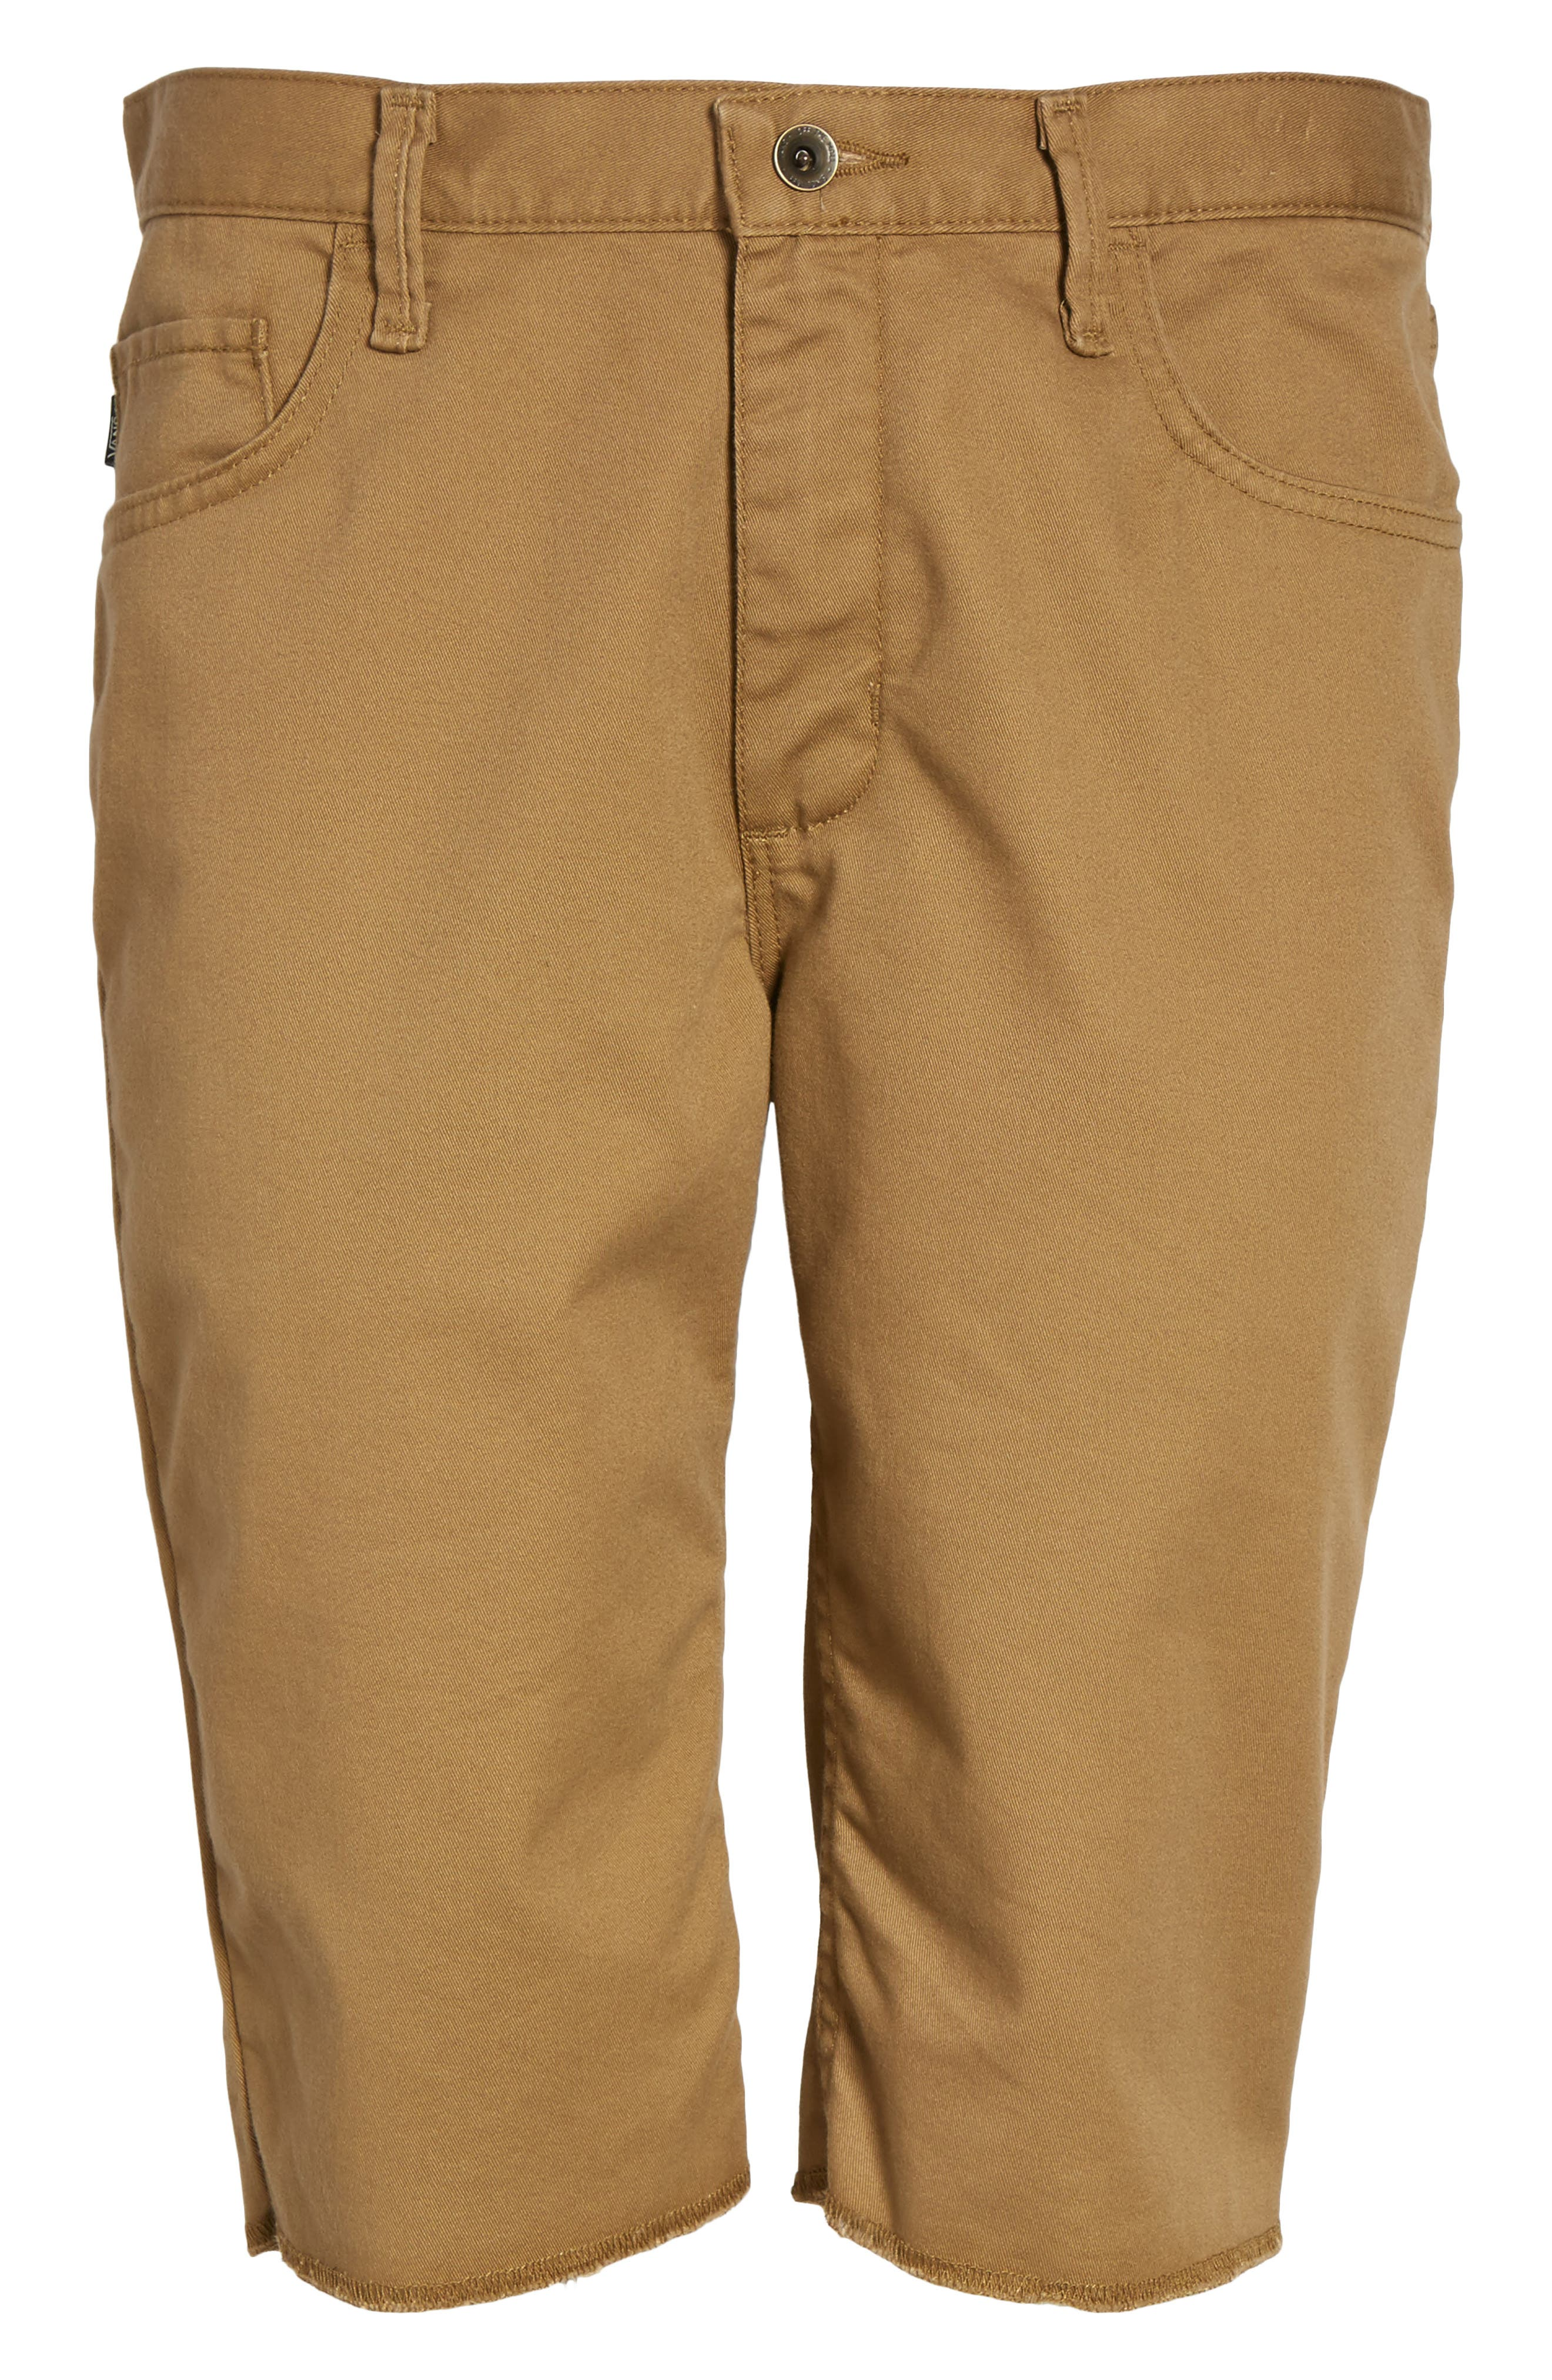 Alternate Image 6  - Vans Covina II - Anthony Van Engelen Twill Shorts